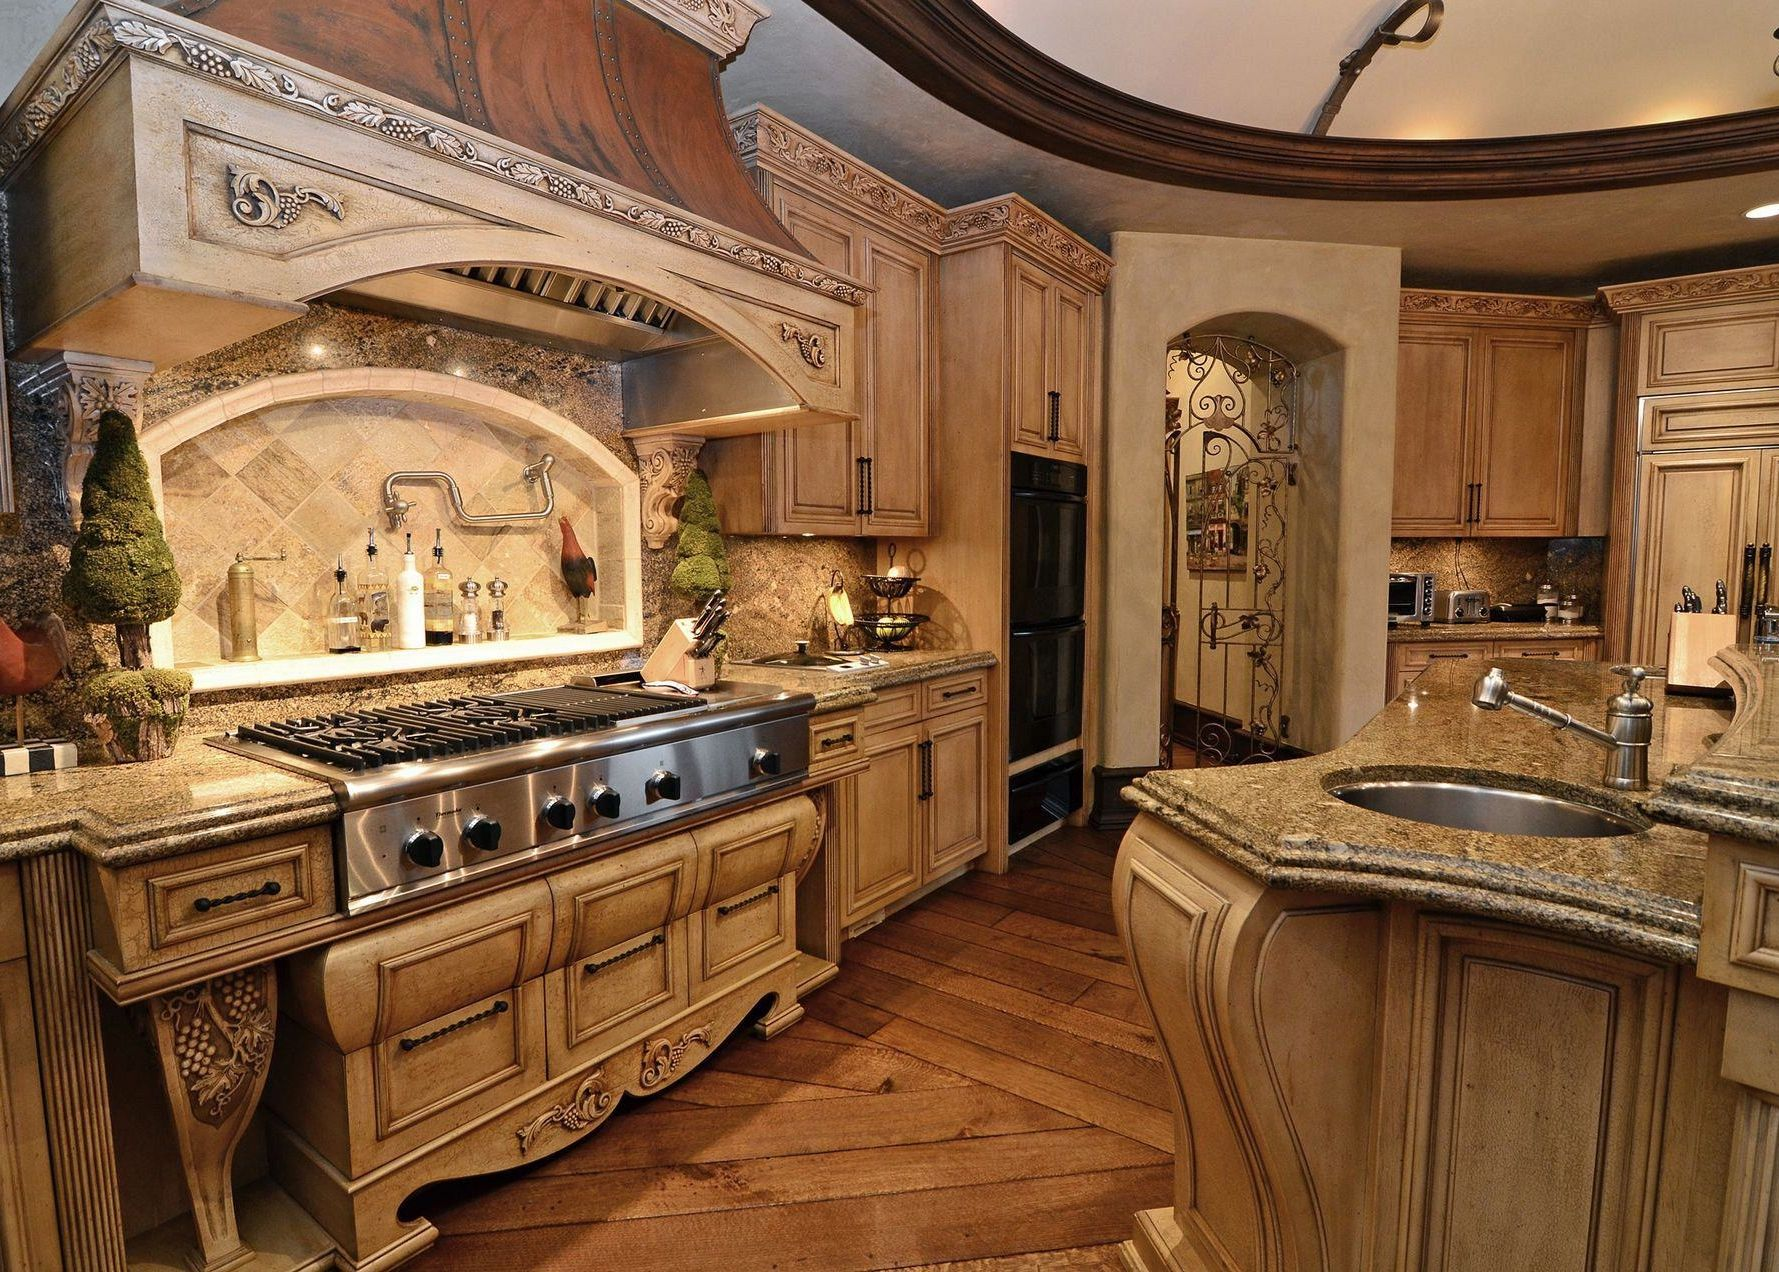 Old world kitchens interior and exterior design ideas kitchens pinterest kitchens Old world tuscan kitchen designs